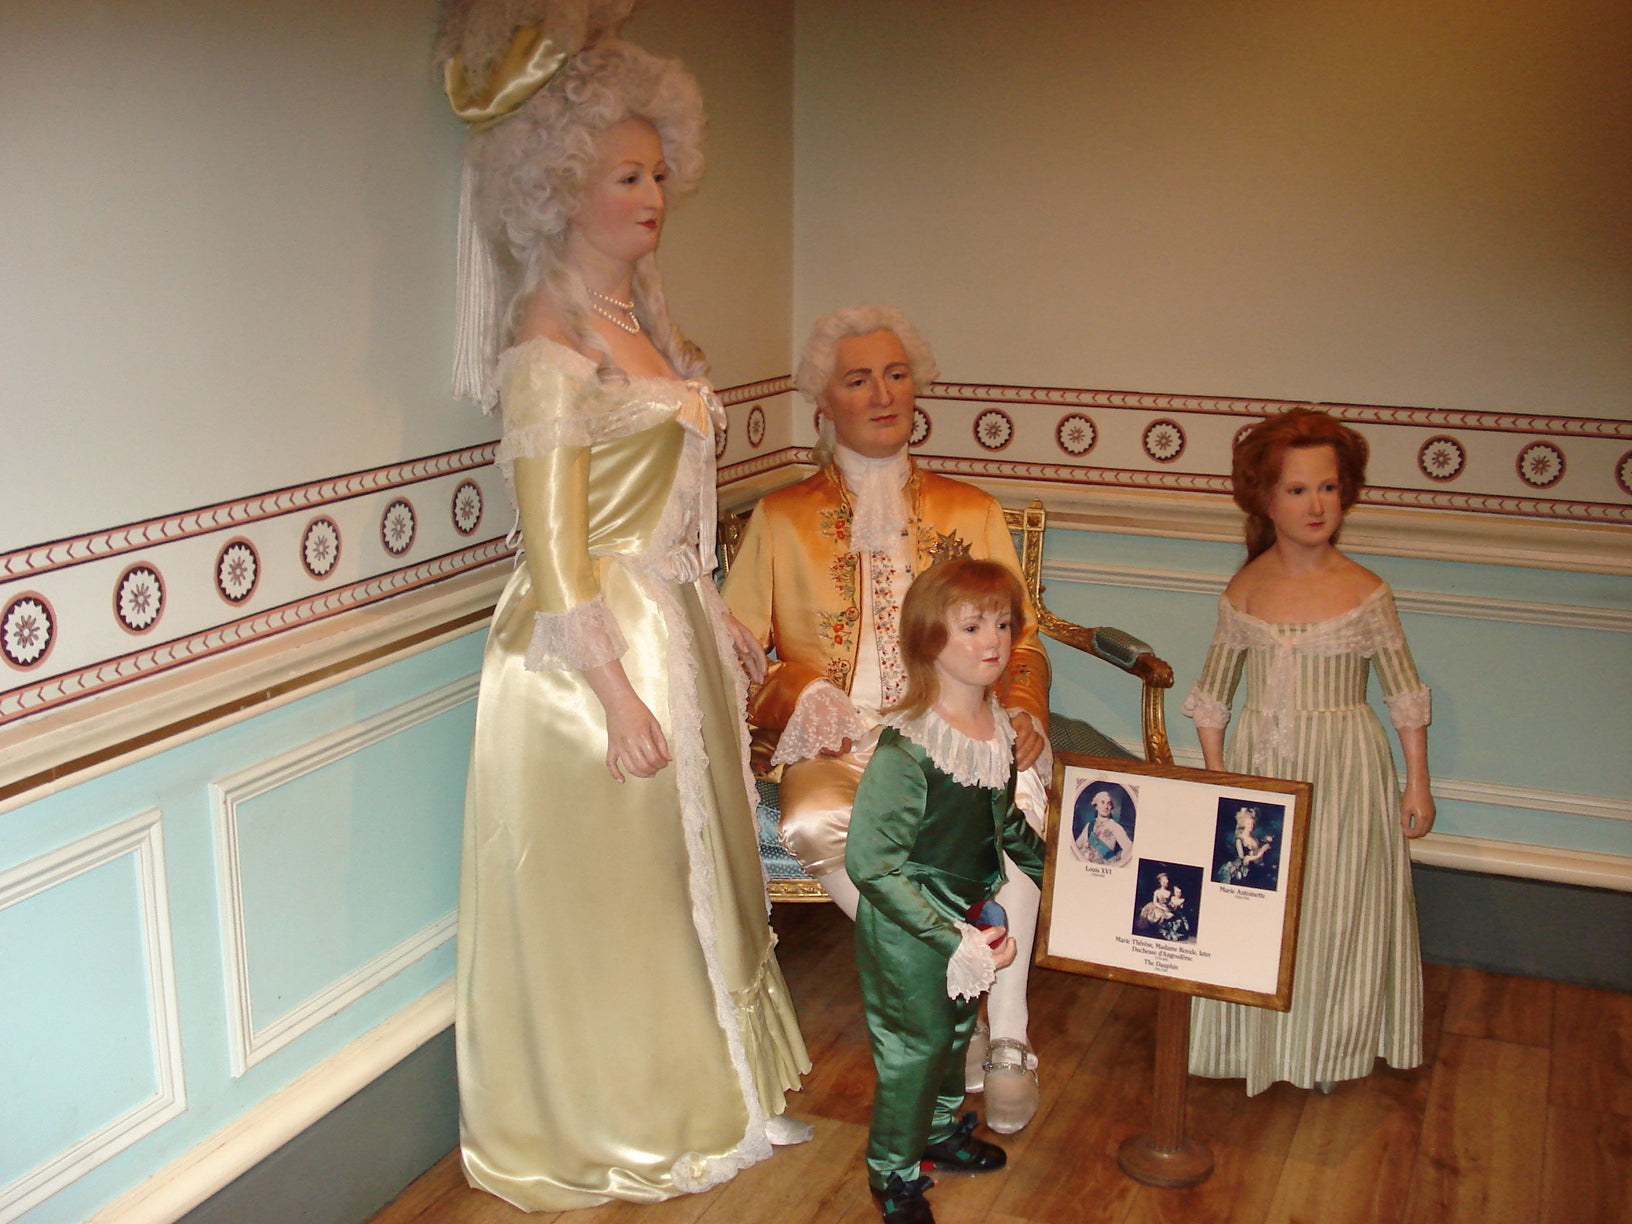 The French Royal family, as modeled by Madame Tussaud.